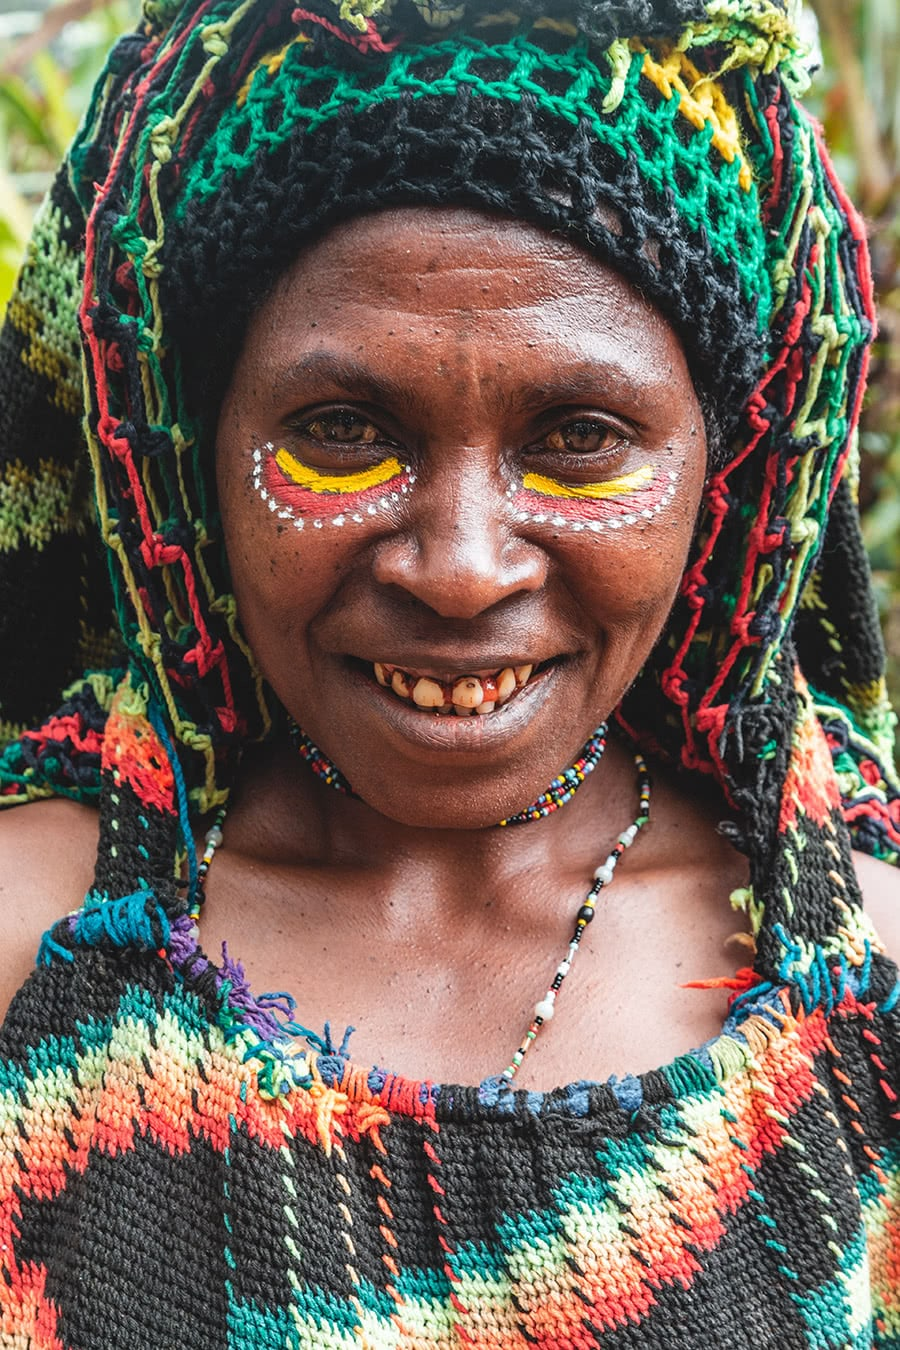 Huli woman in Tari, Papua New Guinea.